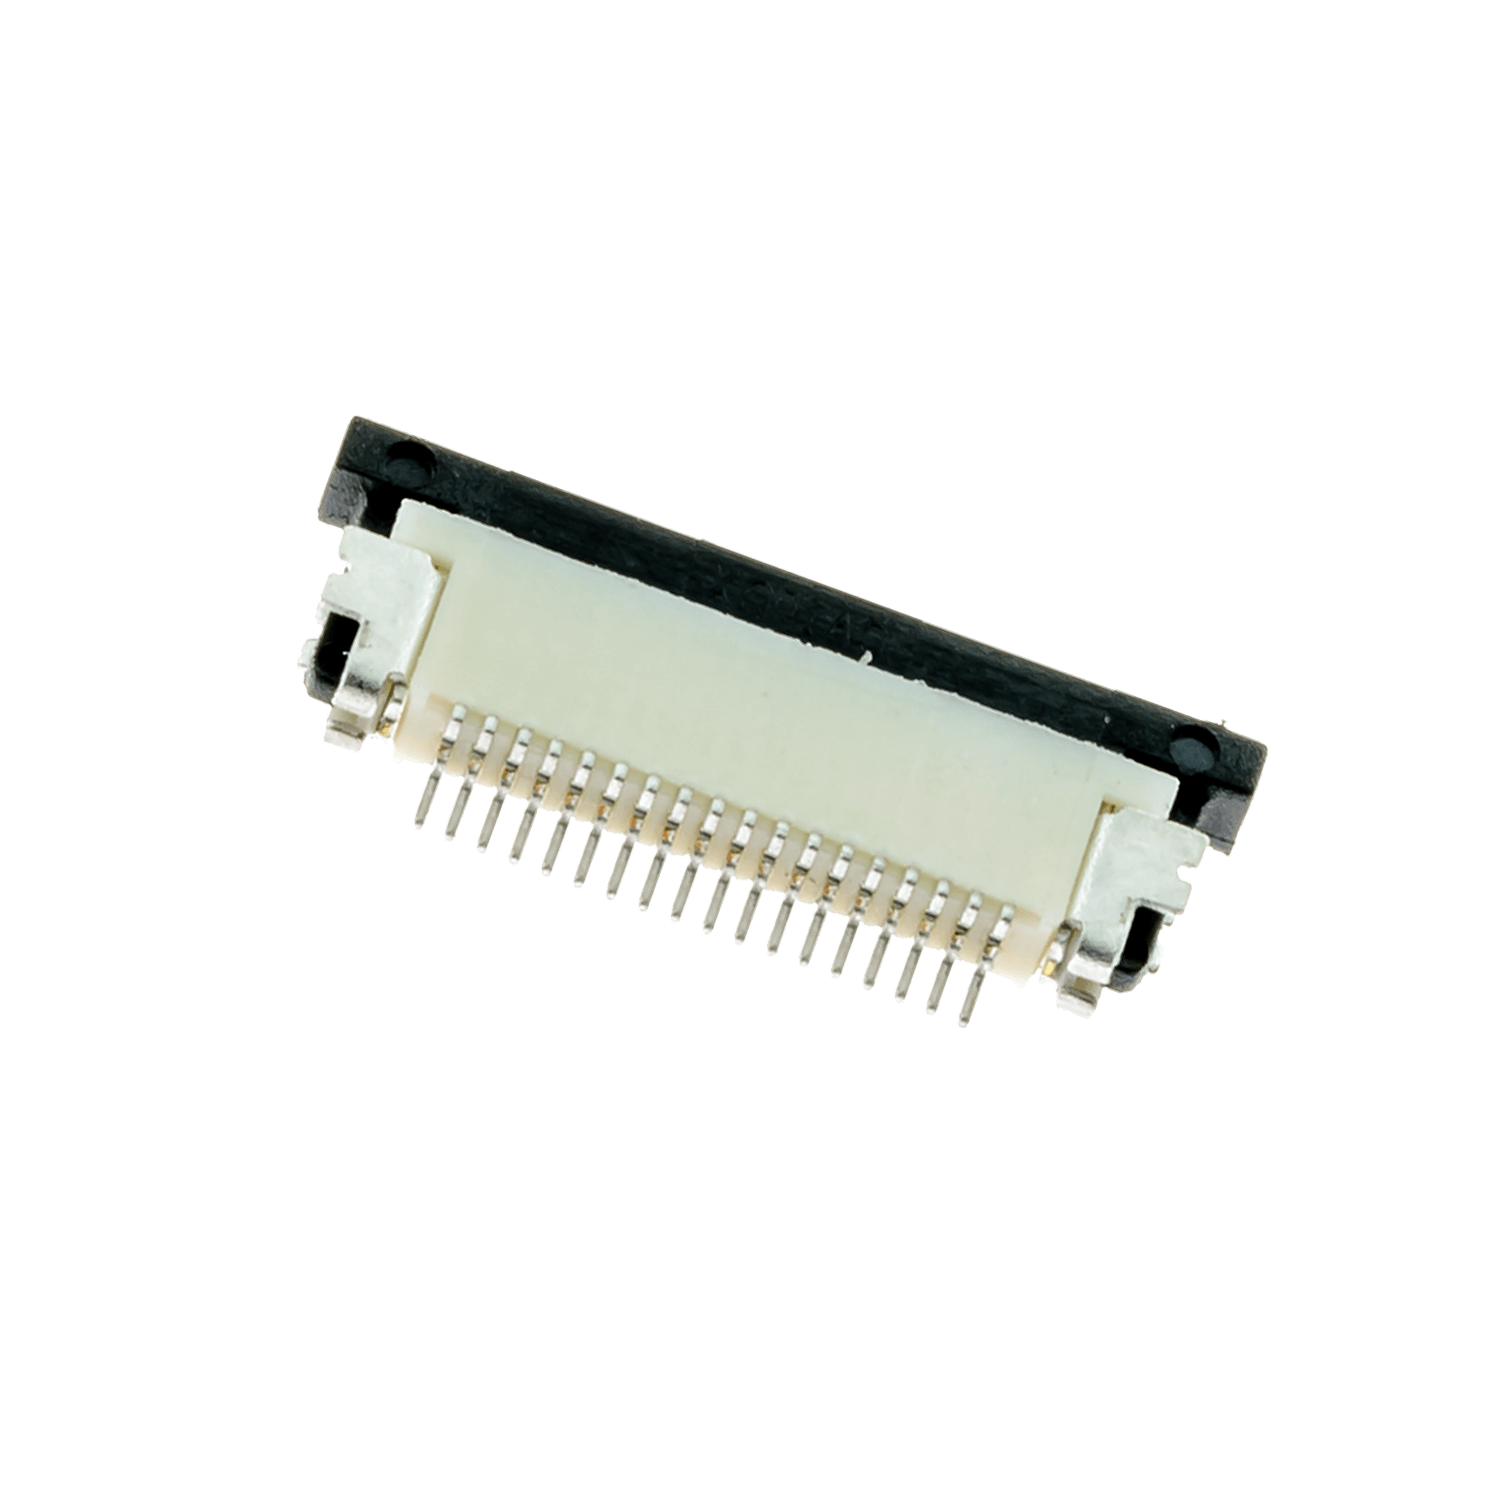 ZIF0518DH – ZIF connector, 0.5 mm pitch, 18 pins, downside contact